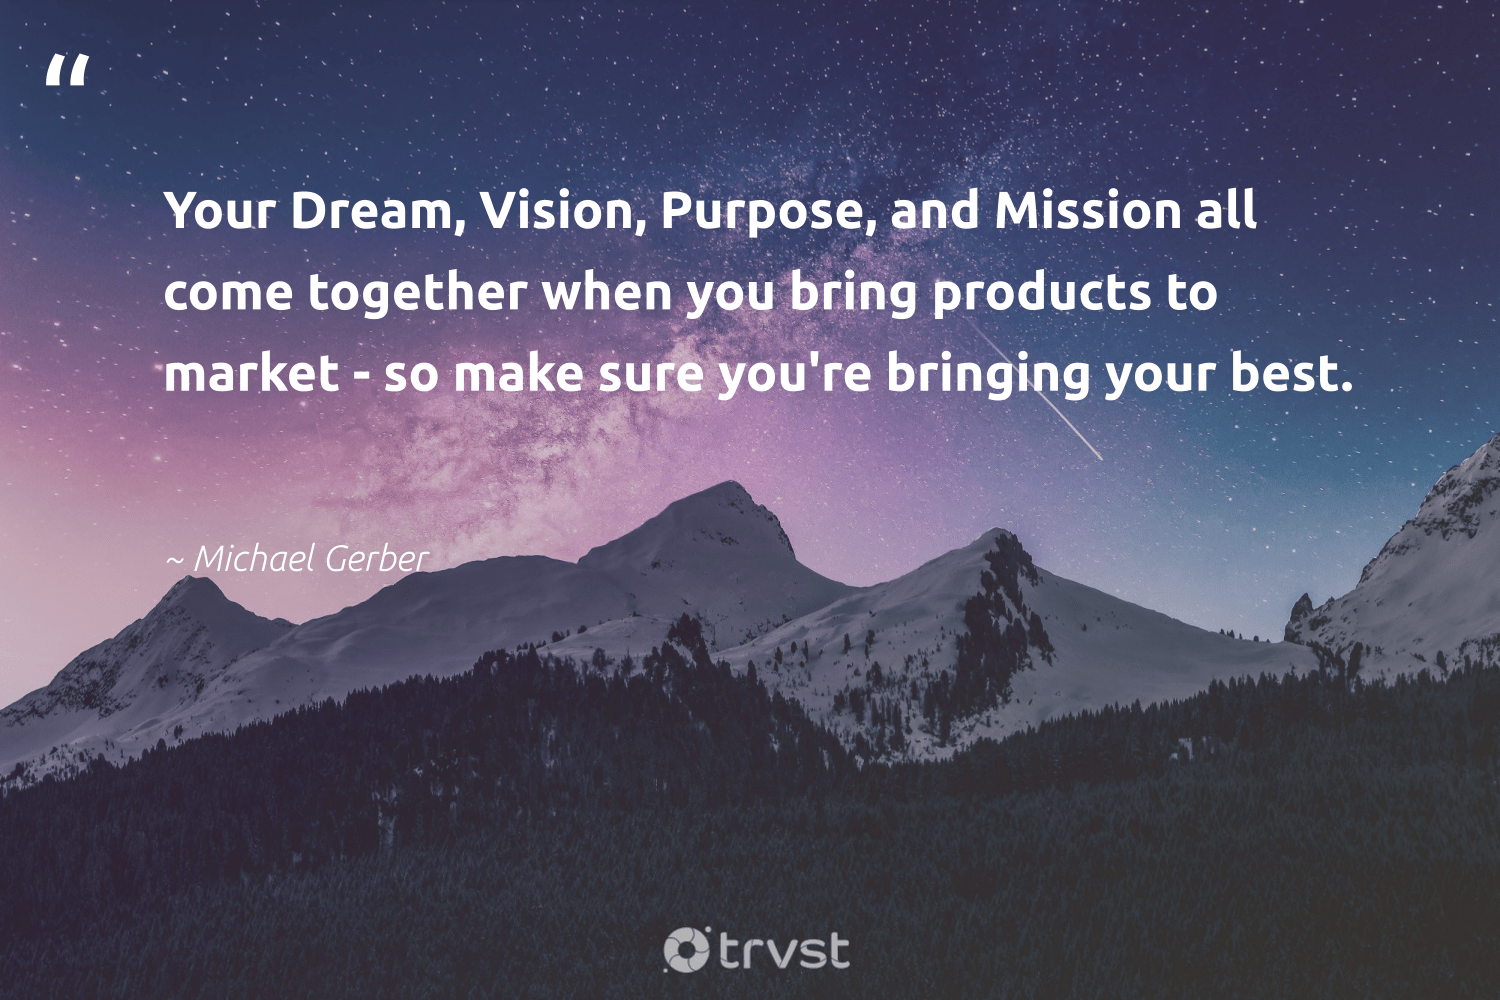 """""""Your Dream, Vision, Purpose, and Mission all come together when you bring products to market - so make sure you're bringing your best.""""  - Michael Gerber #trvst #quotes #purpose #findingpupose #weareallone #mindset #impact #purposedriven #betterplanet #nevergiveup #dogood #findpurpose"""